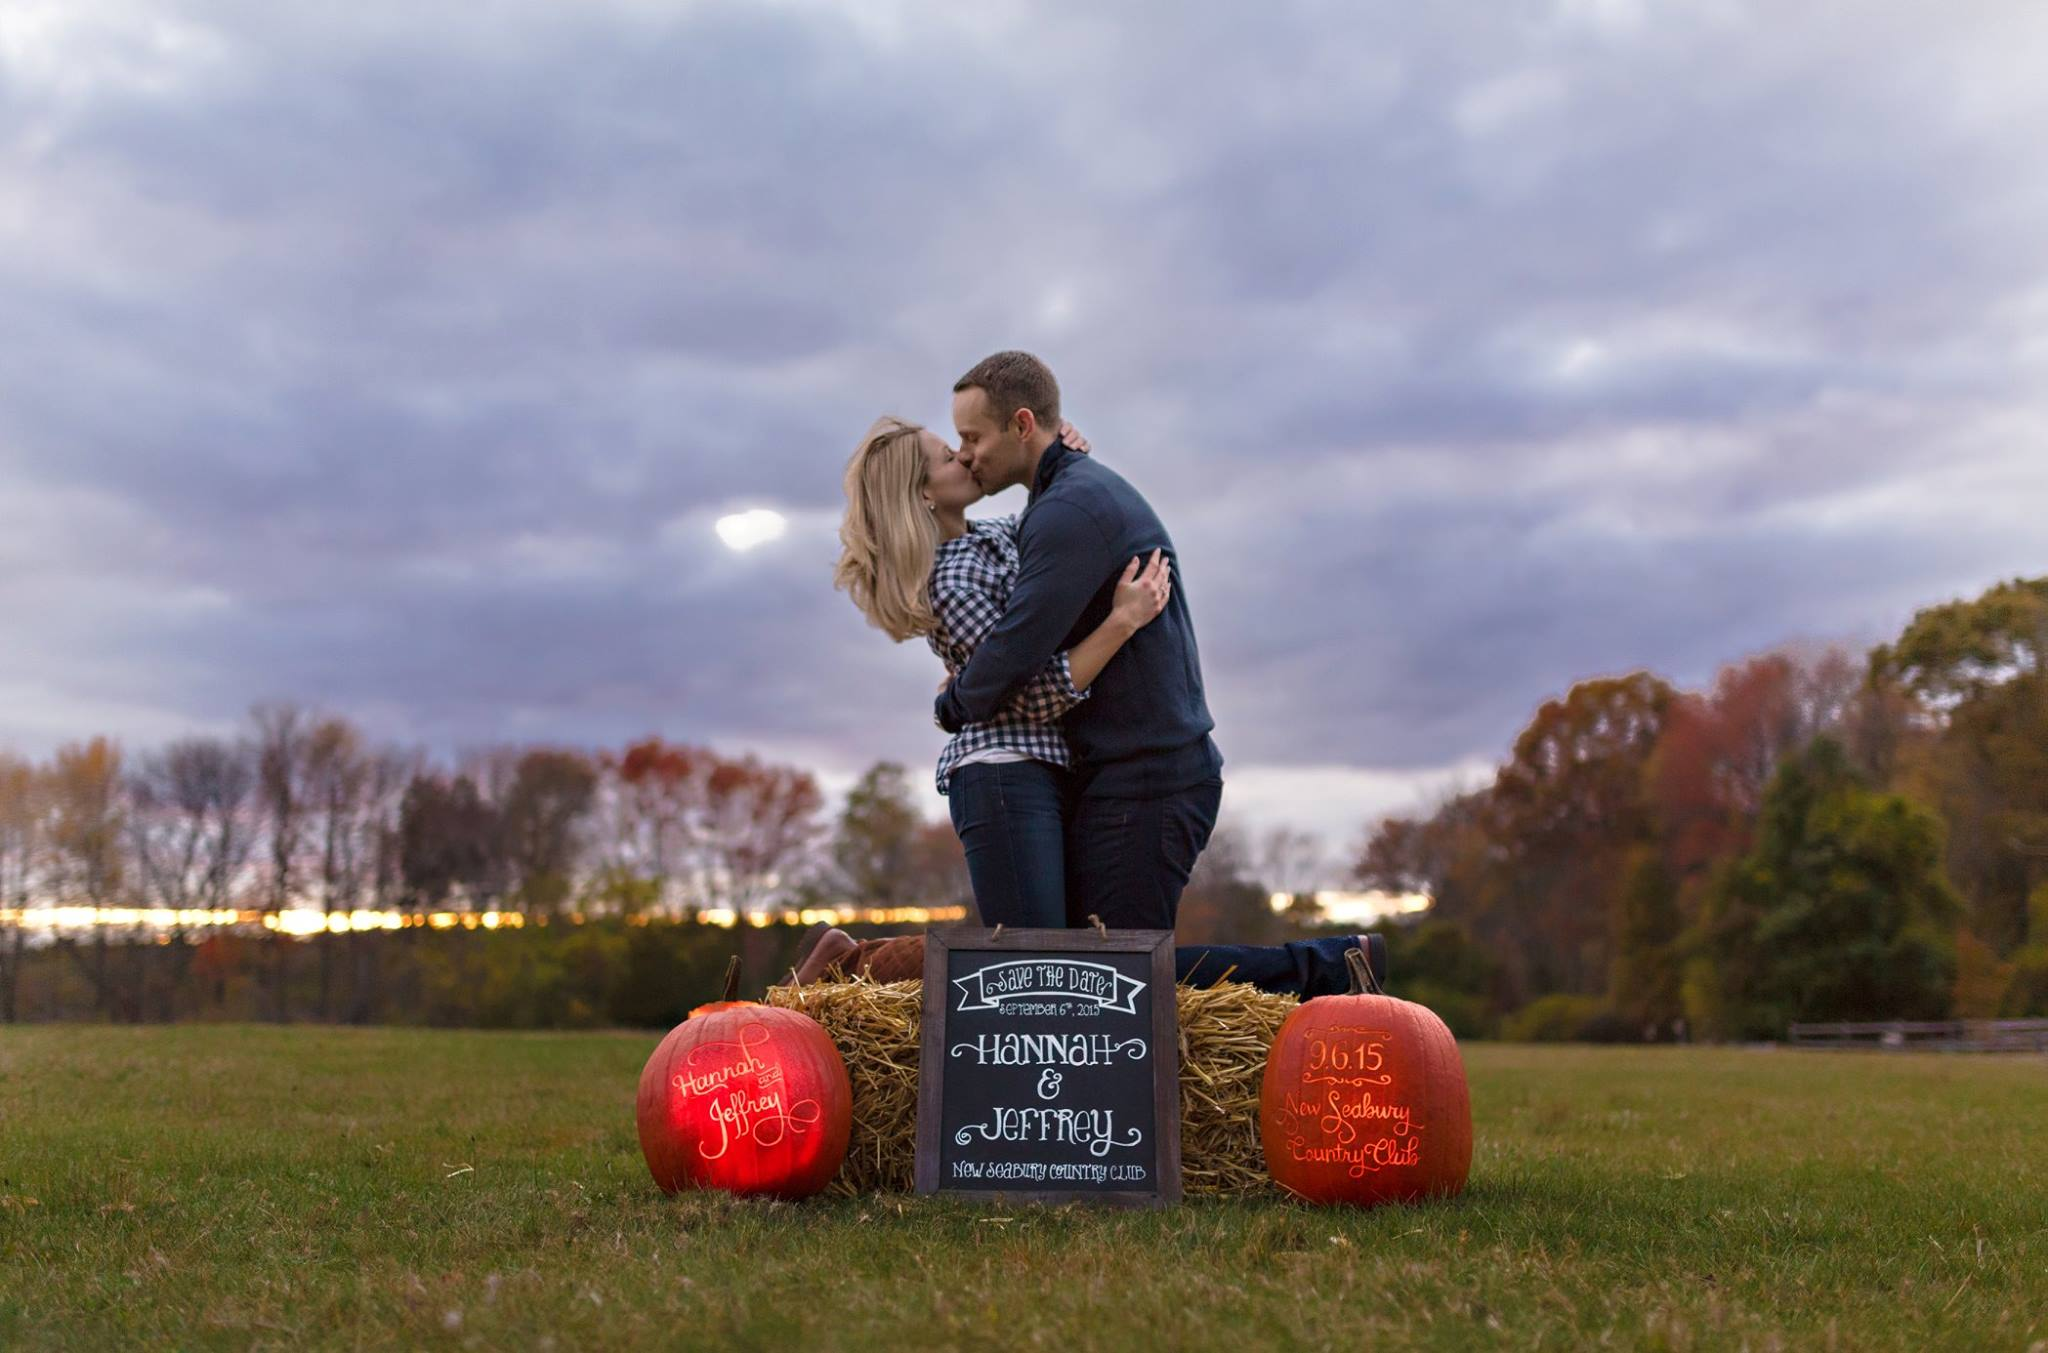 Fall Engagement Shoot with Shoreshotz Weddings  |  Hannah & Jeffrey